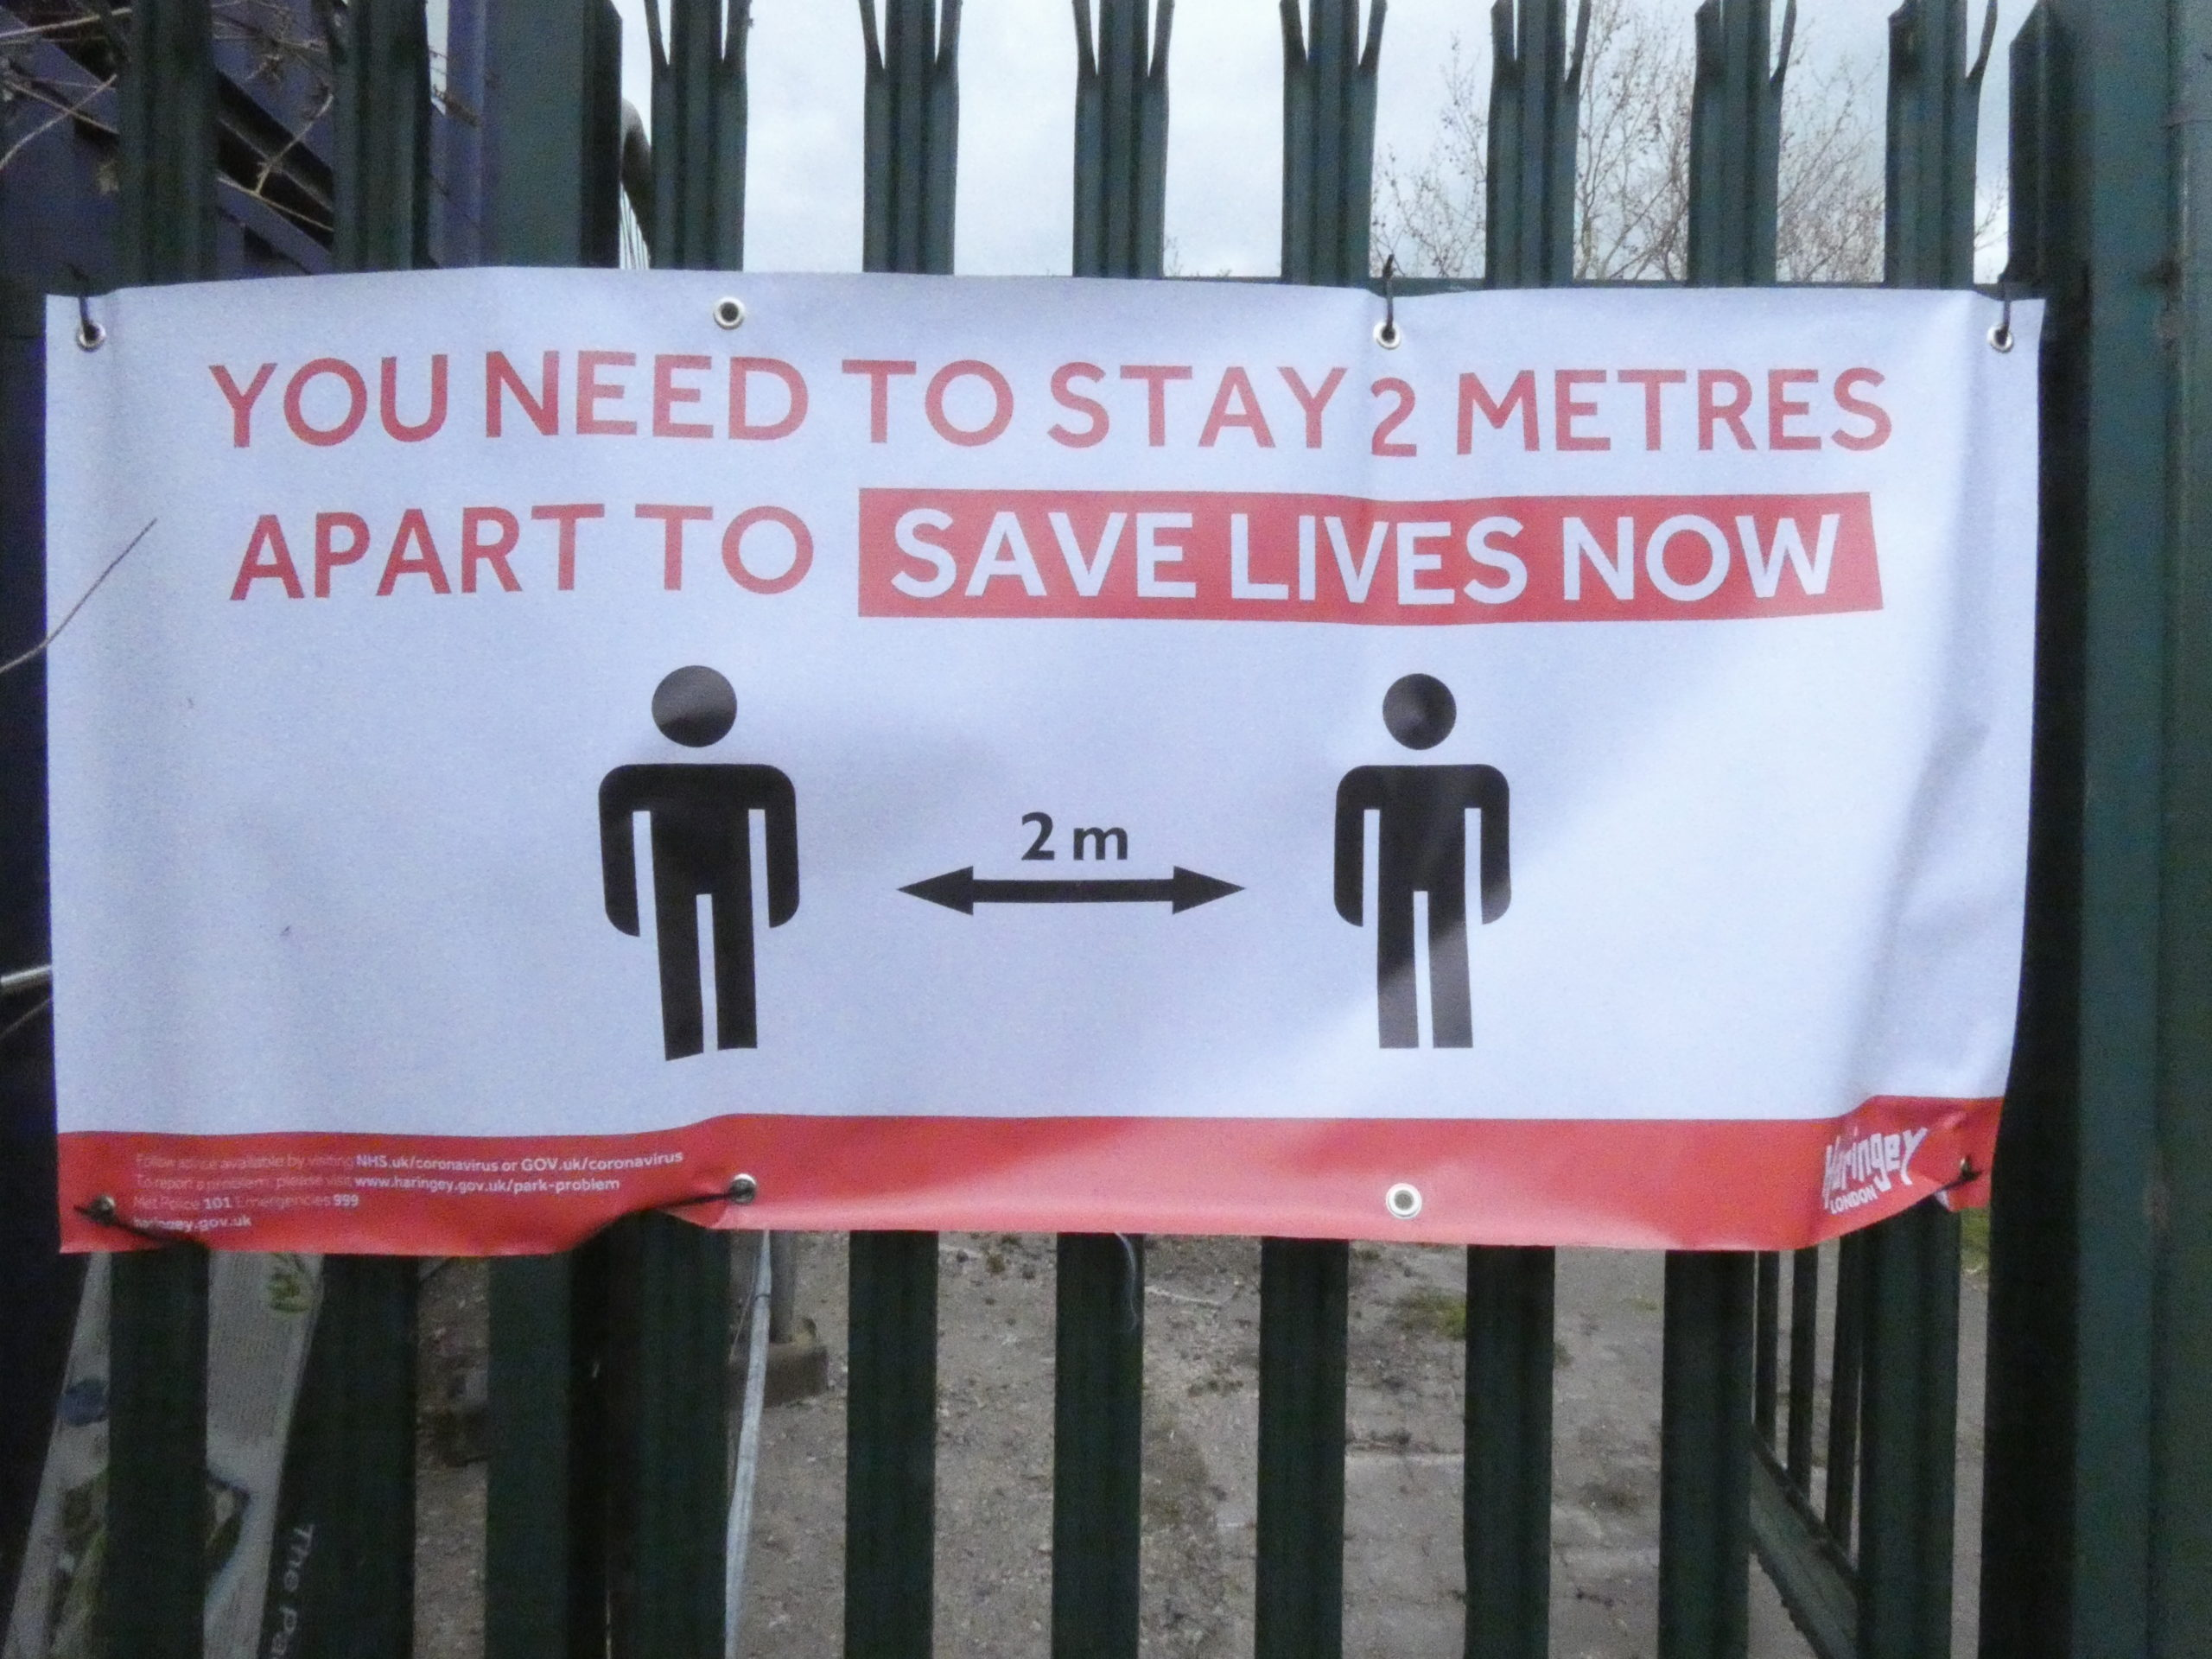 banner tied to metal fence saying You need to stay 2 metres apart to save lives now